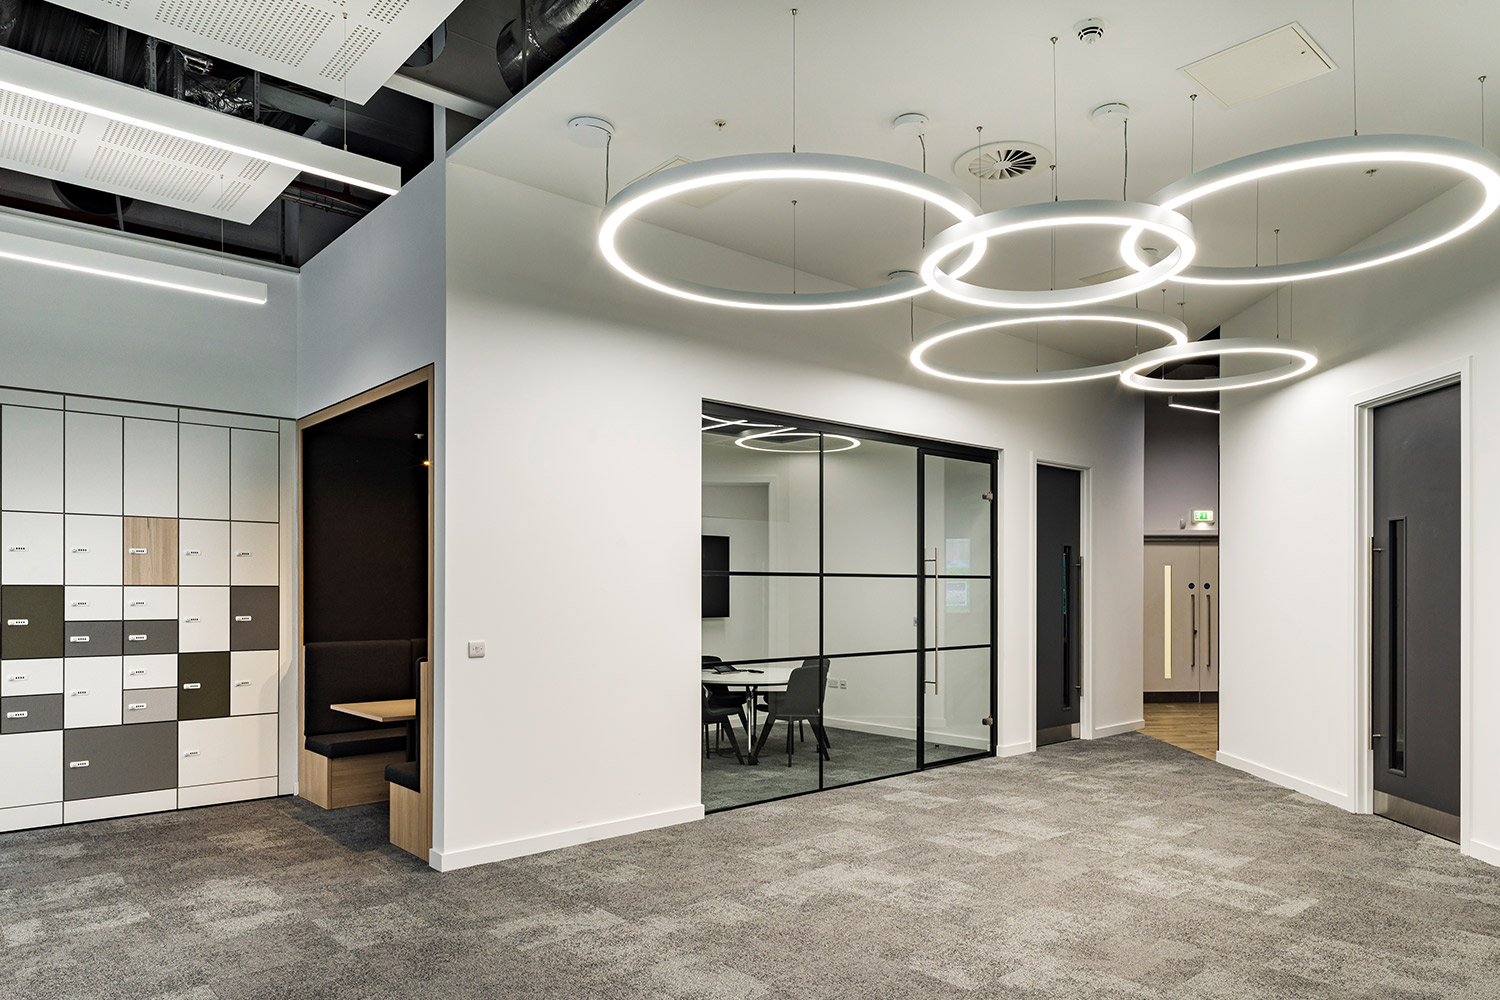 Internal photo of Buro Happold's Leeds office, including break out spaces, lockers and feature lighting